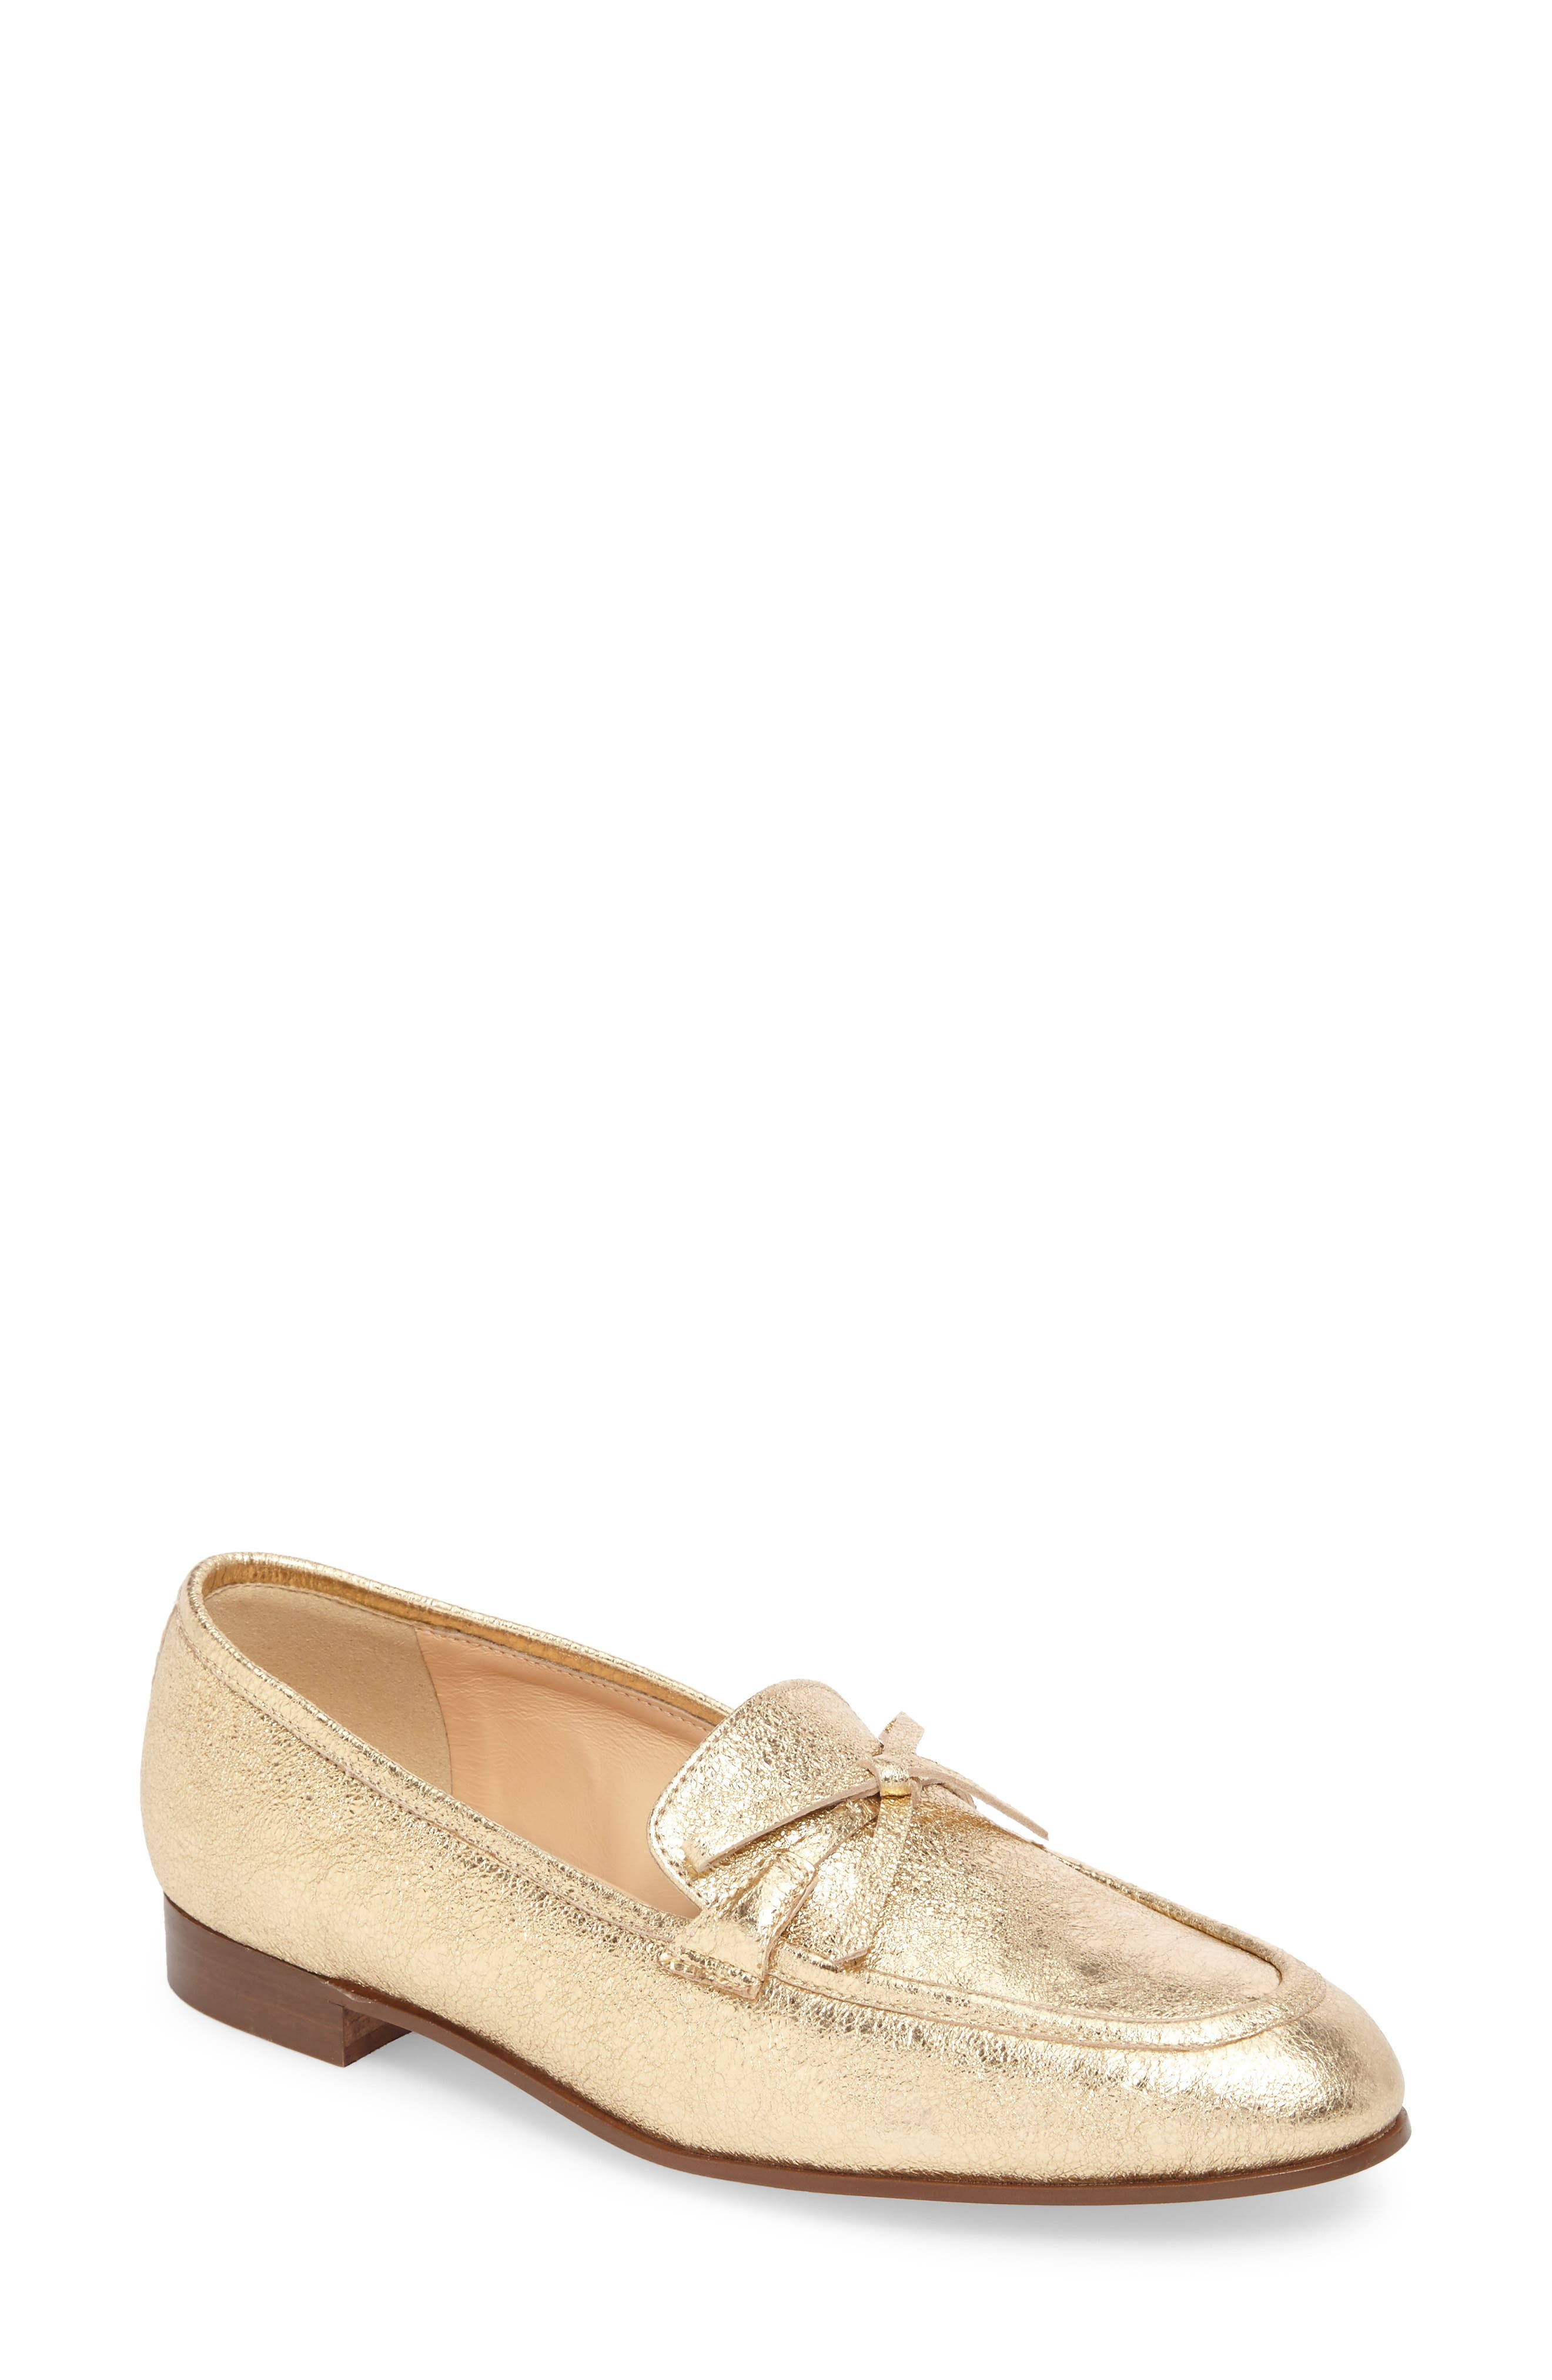 J. Crew Metallic Bow Loafer,                         Main,                         color, Metallic Gold Leather